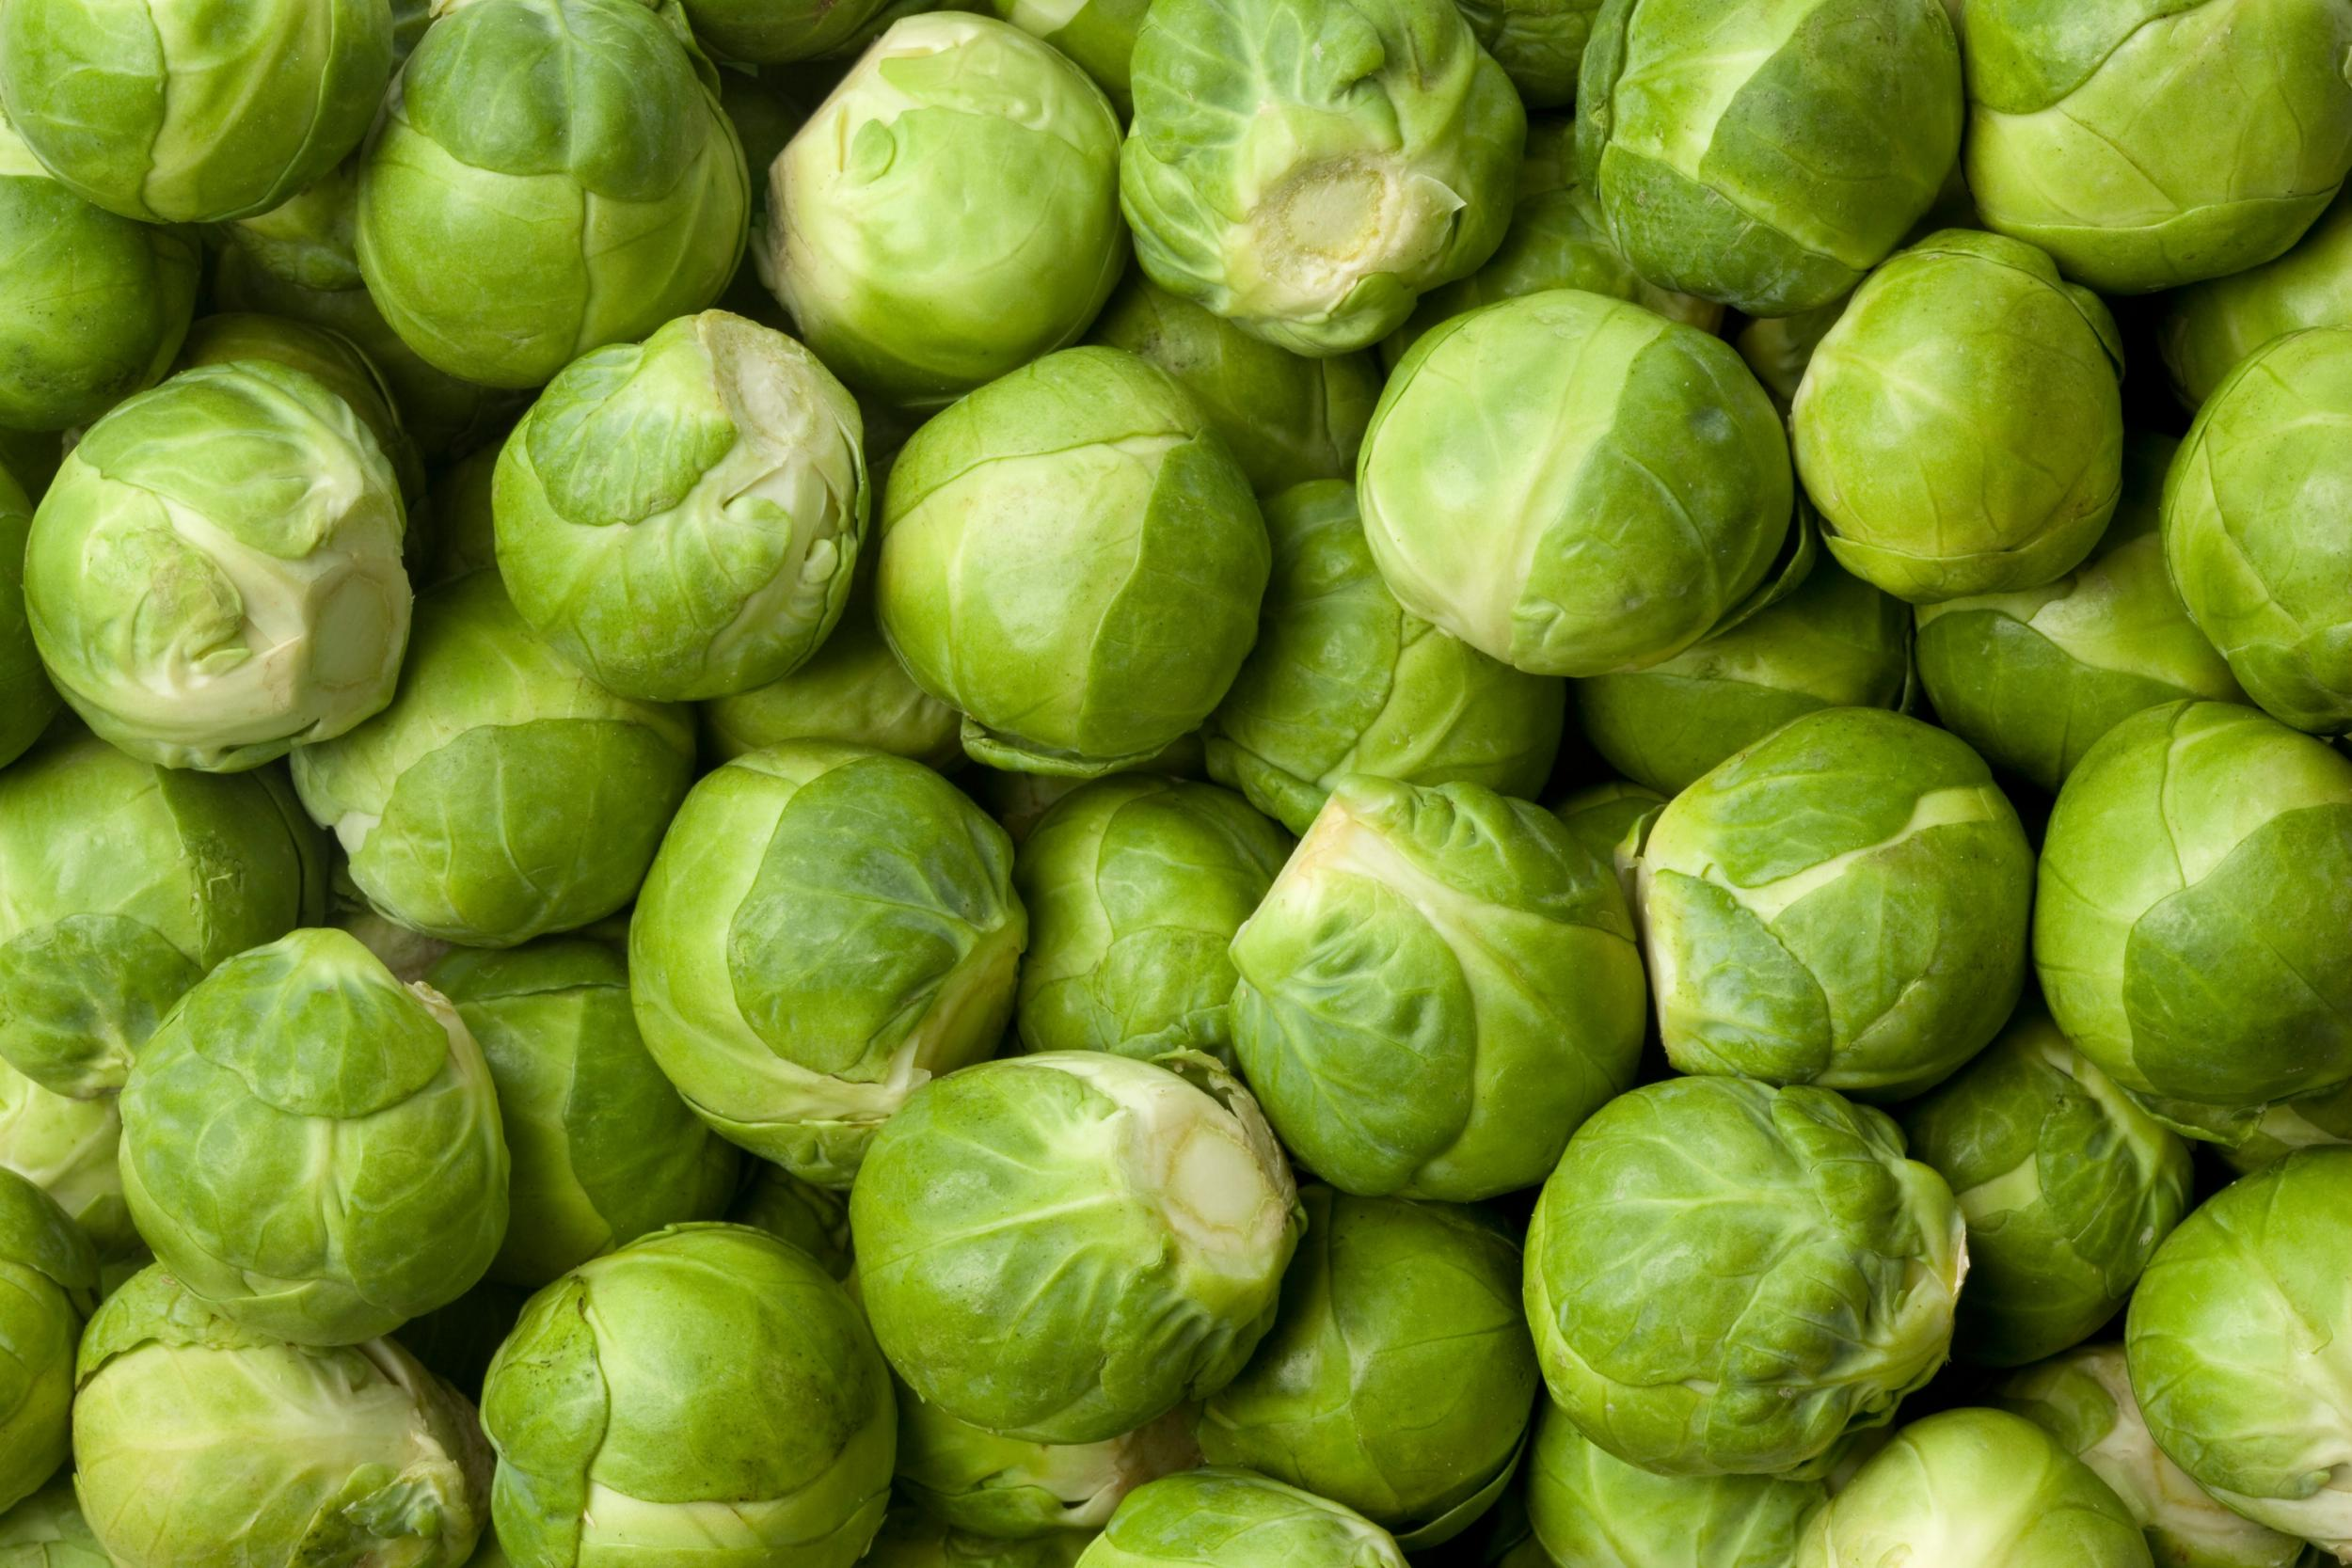 Christmas: Six amazing health benefits of seasonal Brussels sprouts 1